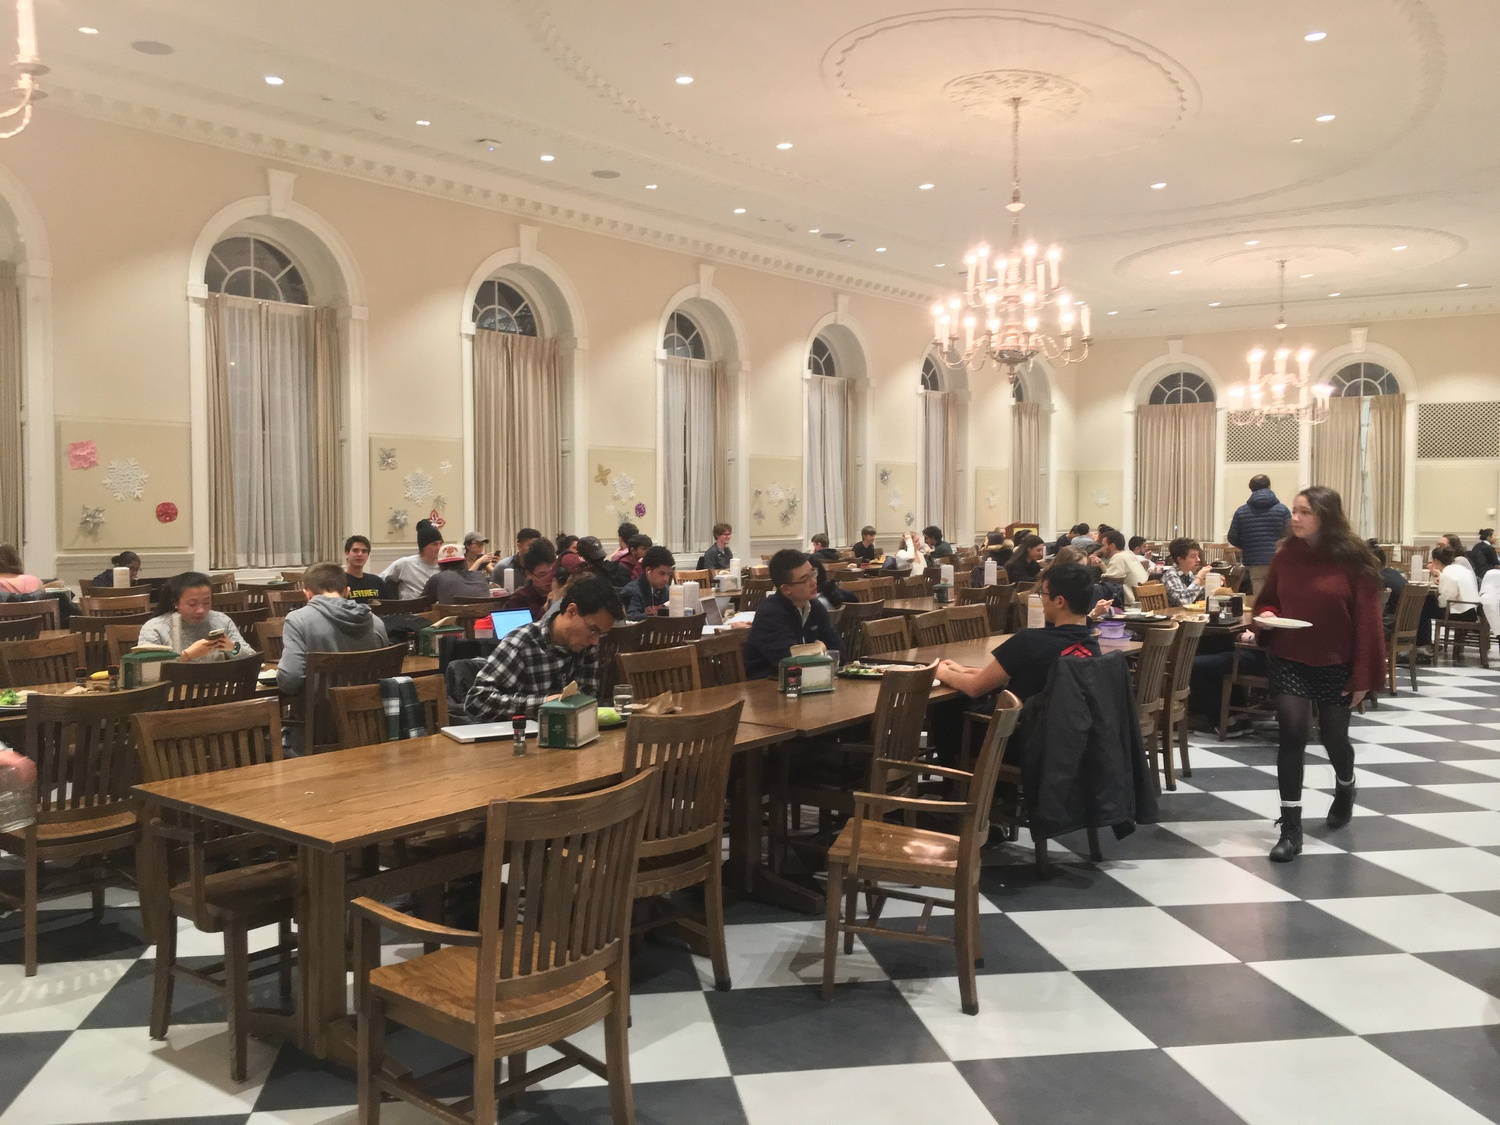 Students work and eat in the Leverett House Dining Hall.